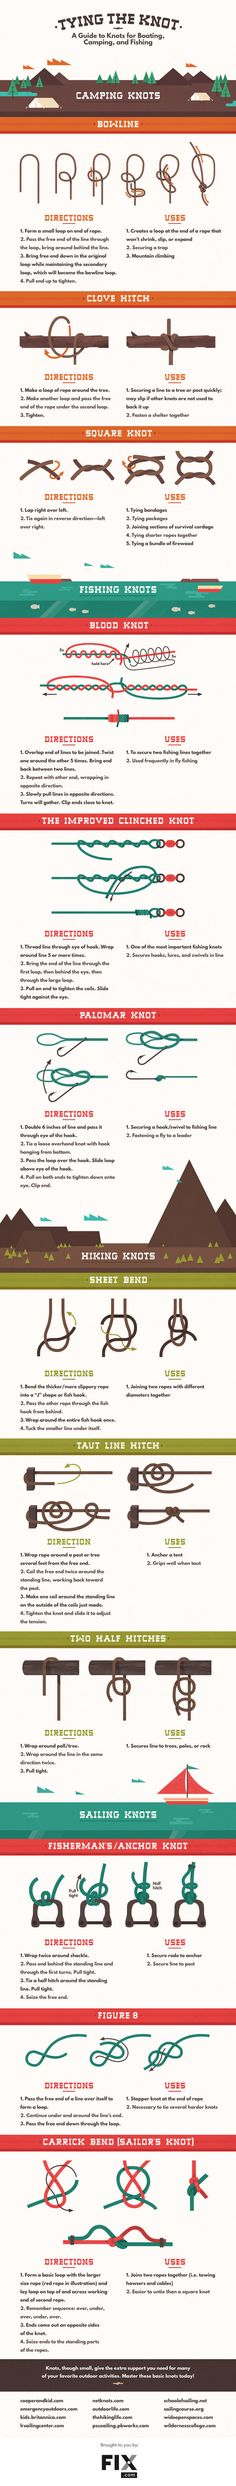 Learn all the knots you need to know for boating, camping, and fishing. Sooo outdoorsy.